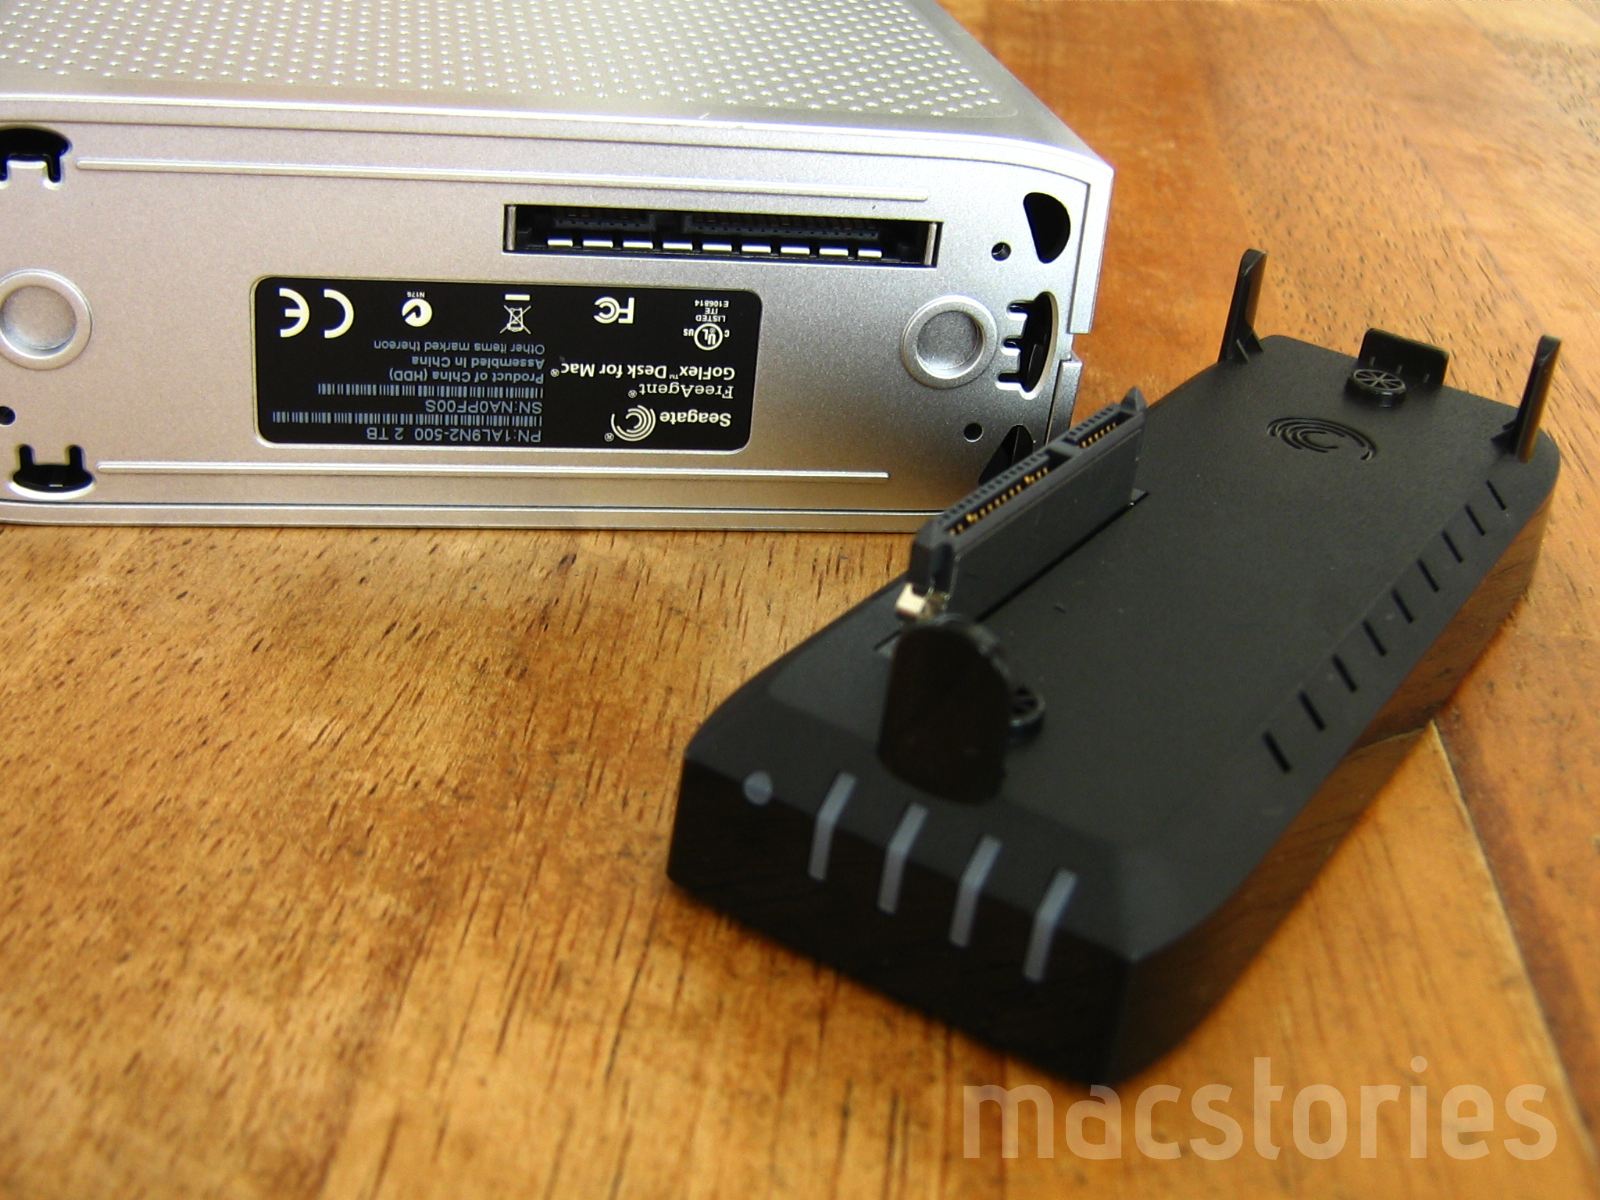 Macstories Product Review Seagate Goflex Amp Goflex Desk